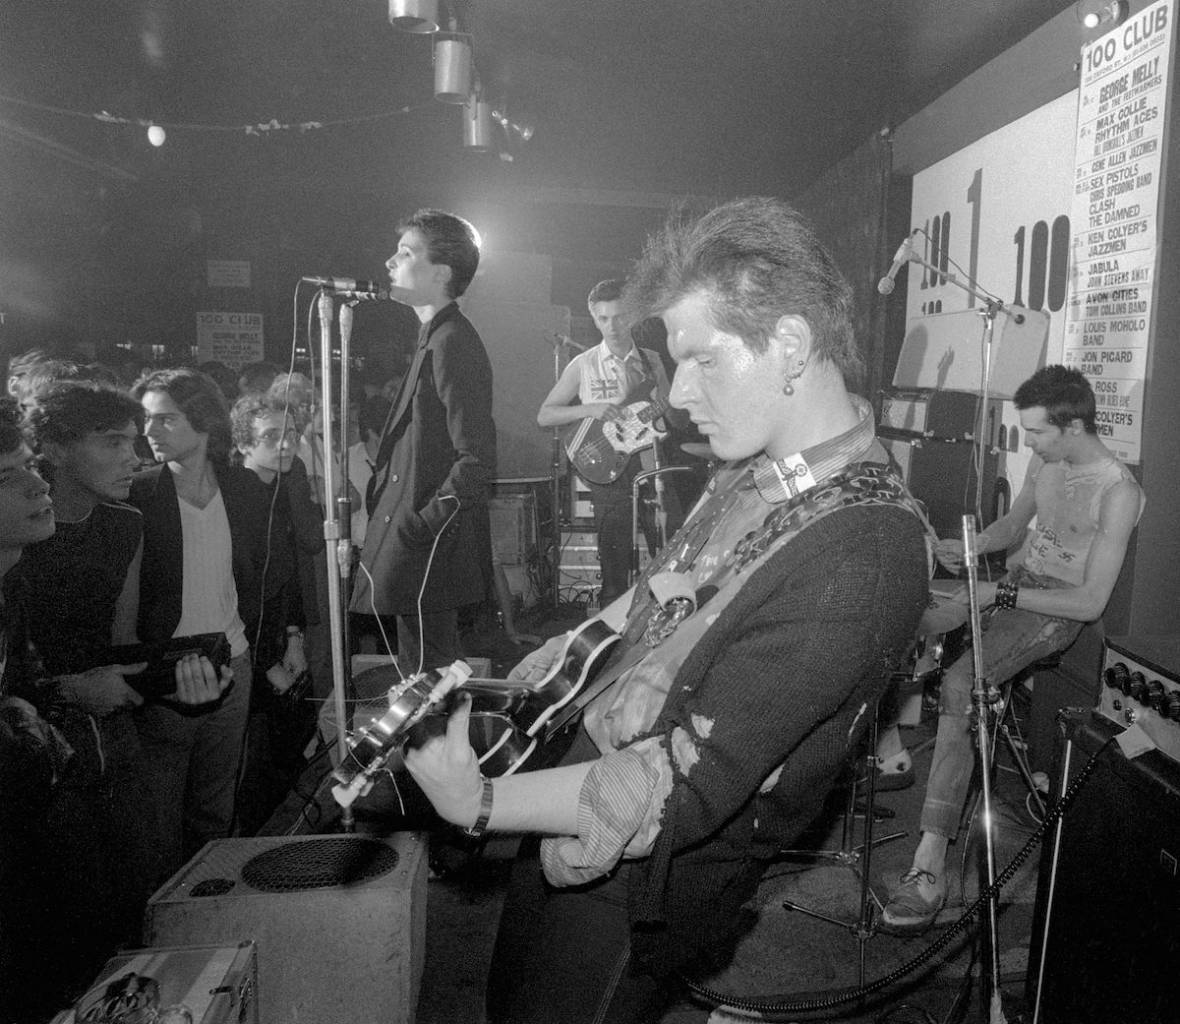 Mandatory Credit: Photo by Ray Stevenson/REX Shutterstock (619076g) Siouxsie and the Banshees - Siouxsie Sioux, Steve Severin Sid Vicious (on drums) and Marco Pirroni Siouxsie and the Banshees first gig at the 100 club, London - 1976